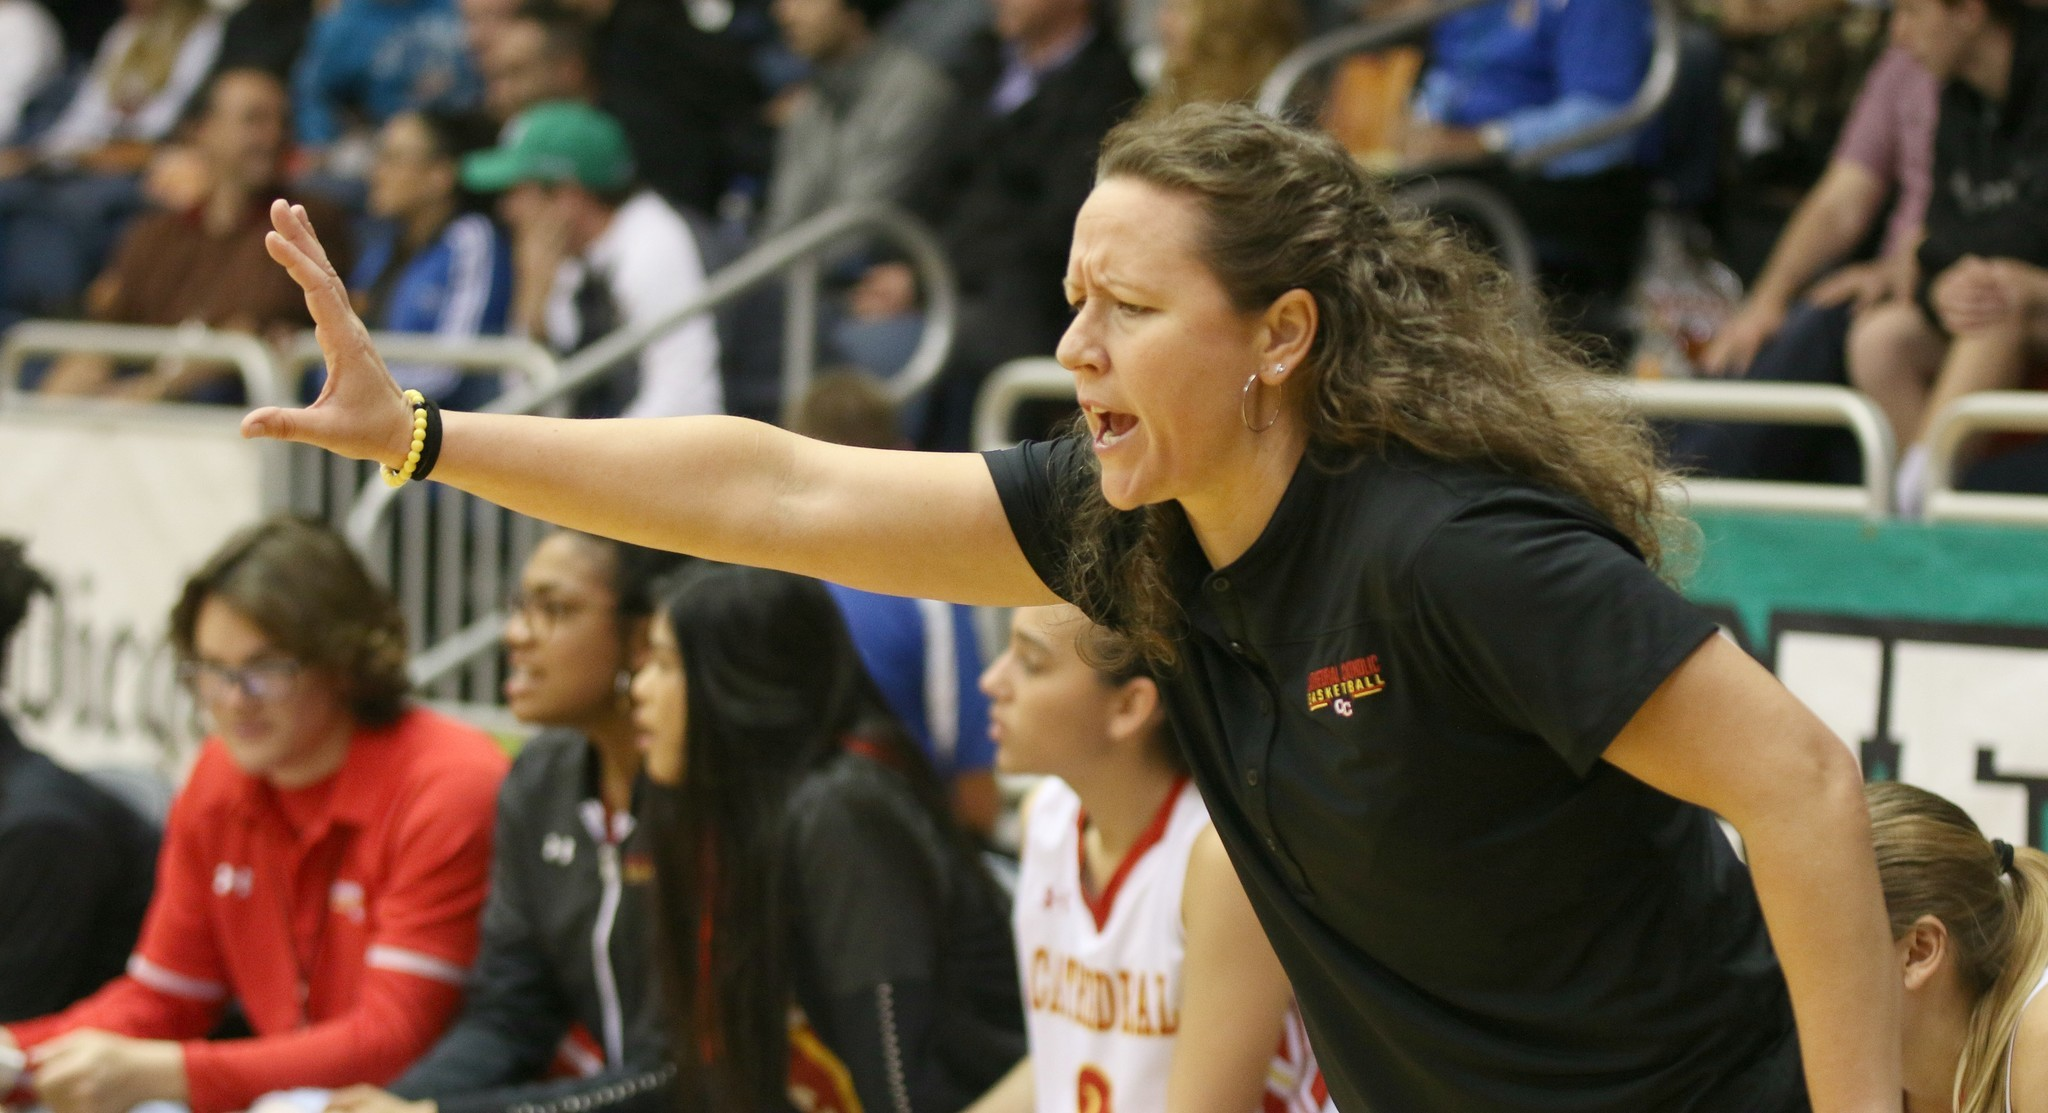 Head Coach Jackie Turpin directed the Dons to their first Open Division title.